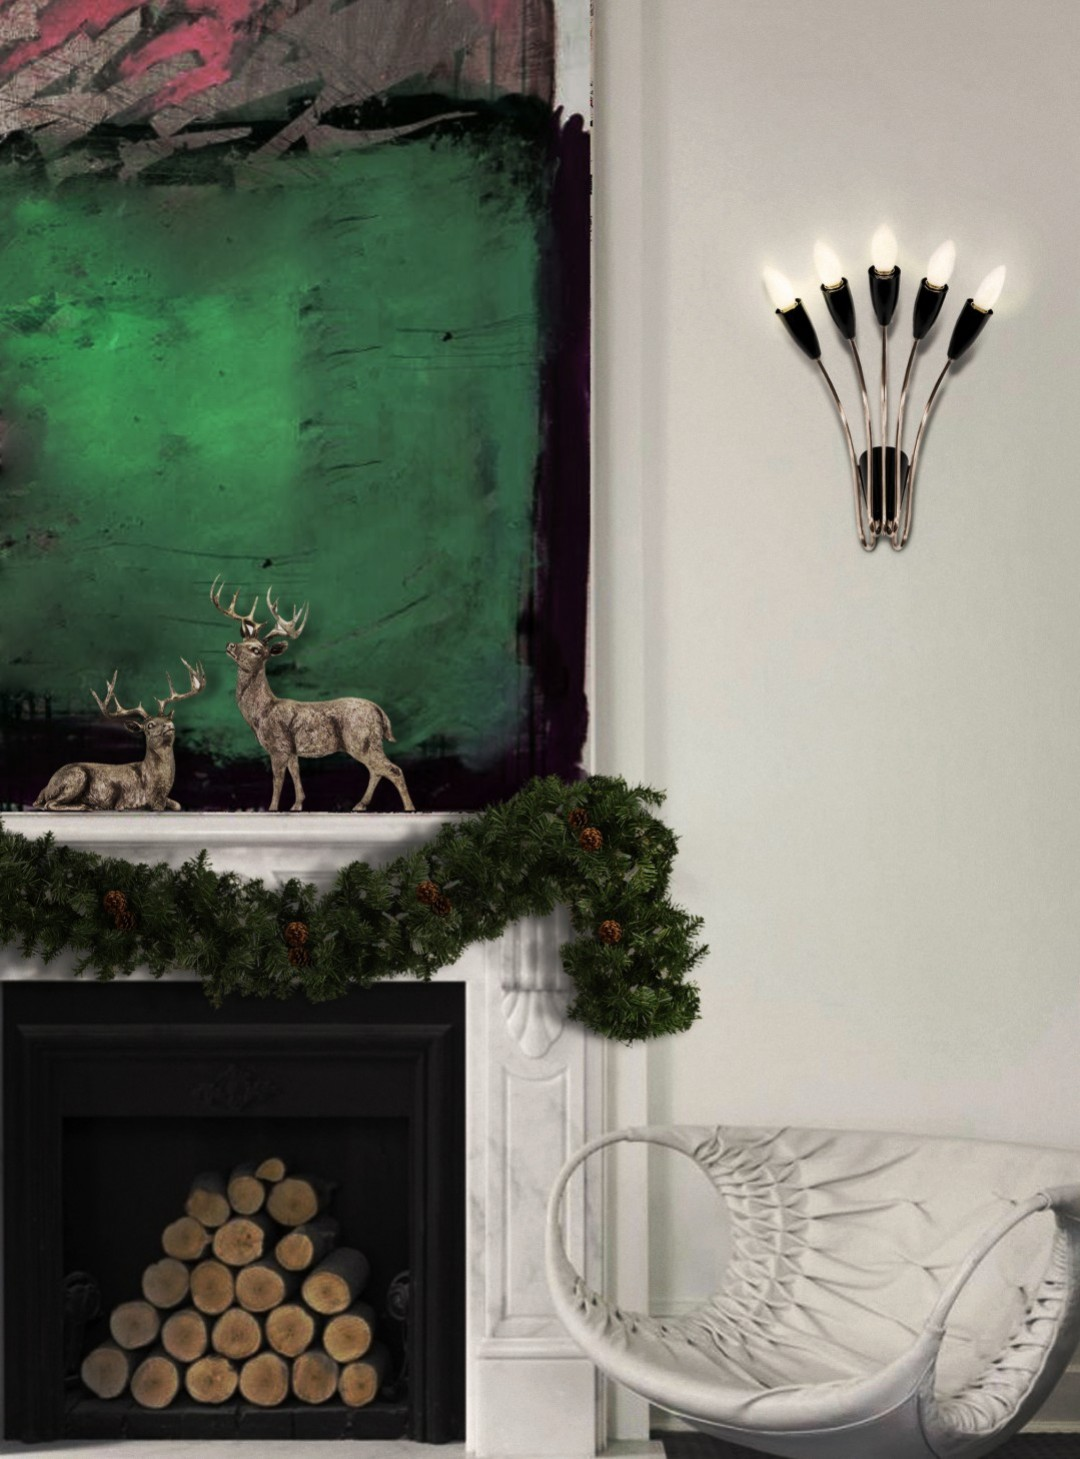 Learn How To Get The Perfect Christmas Eve Vibe With Our Decor Ideas 6 Christmas Eve Vibe Christmas Eve Vibe Learn How To Get The Perfect Christmas Eve Vibe With Our Decor Ideas Learn How To Get The Perfect Christmas Eve Vibe With Our Decor Ideas 6